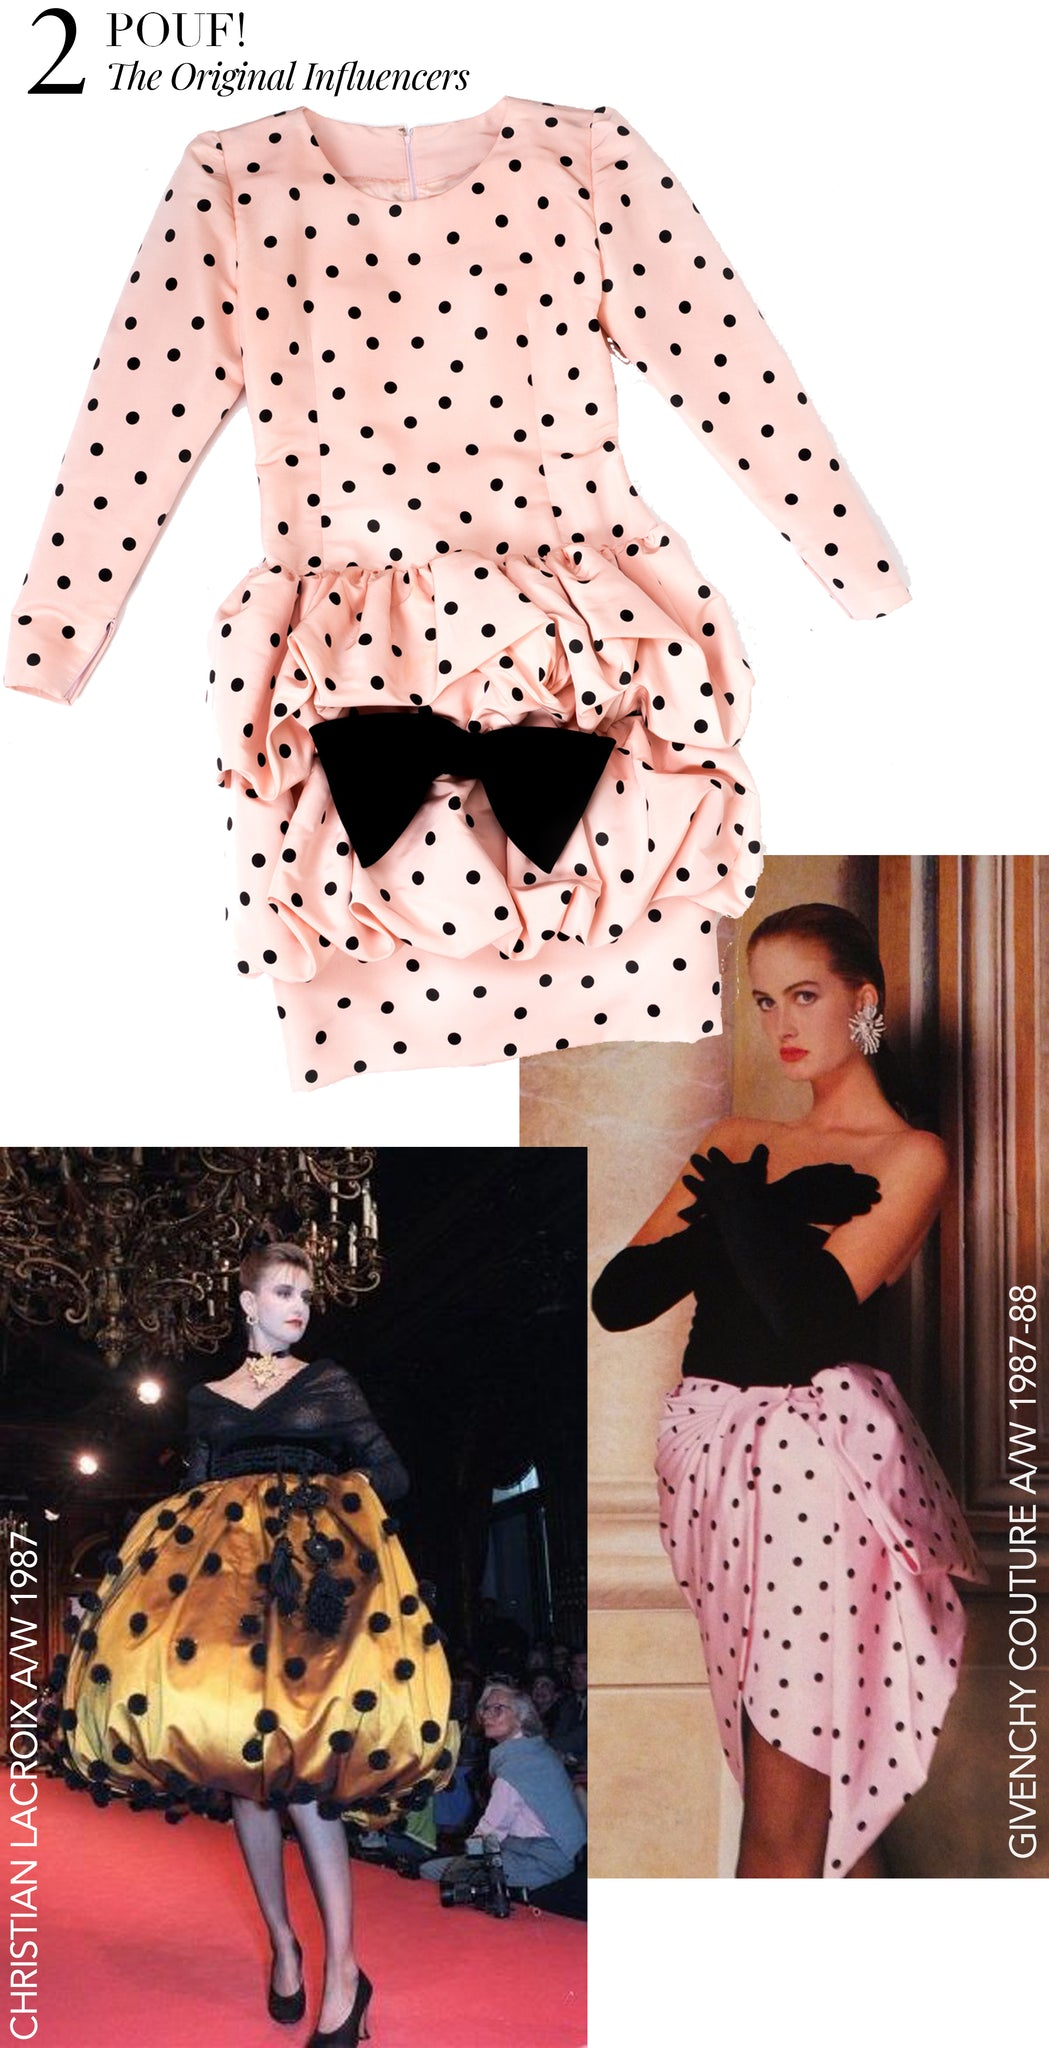 Recess Dress Code Givenchy Pouf Dress Polka Dots